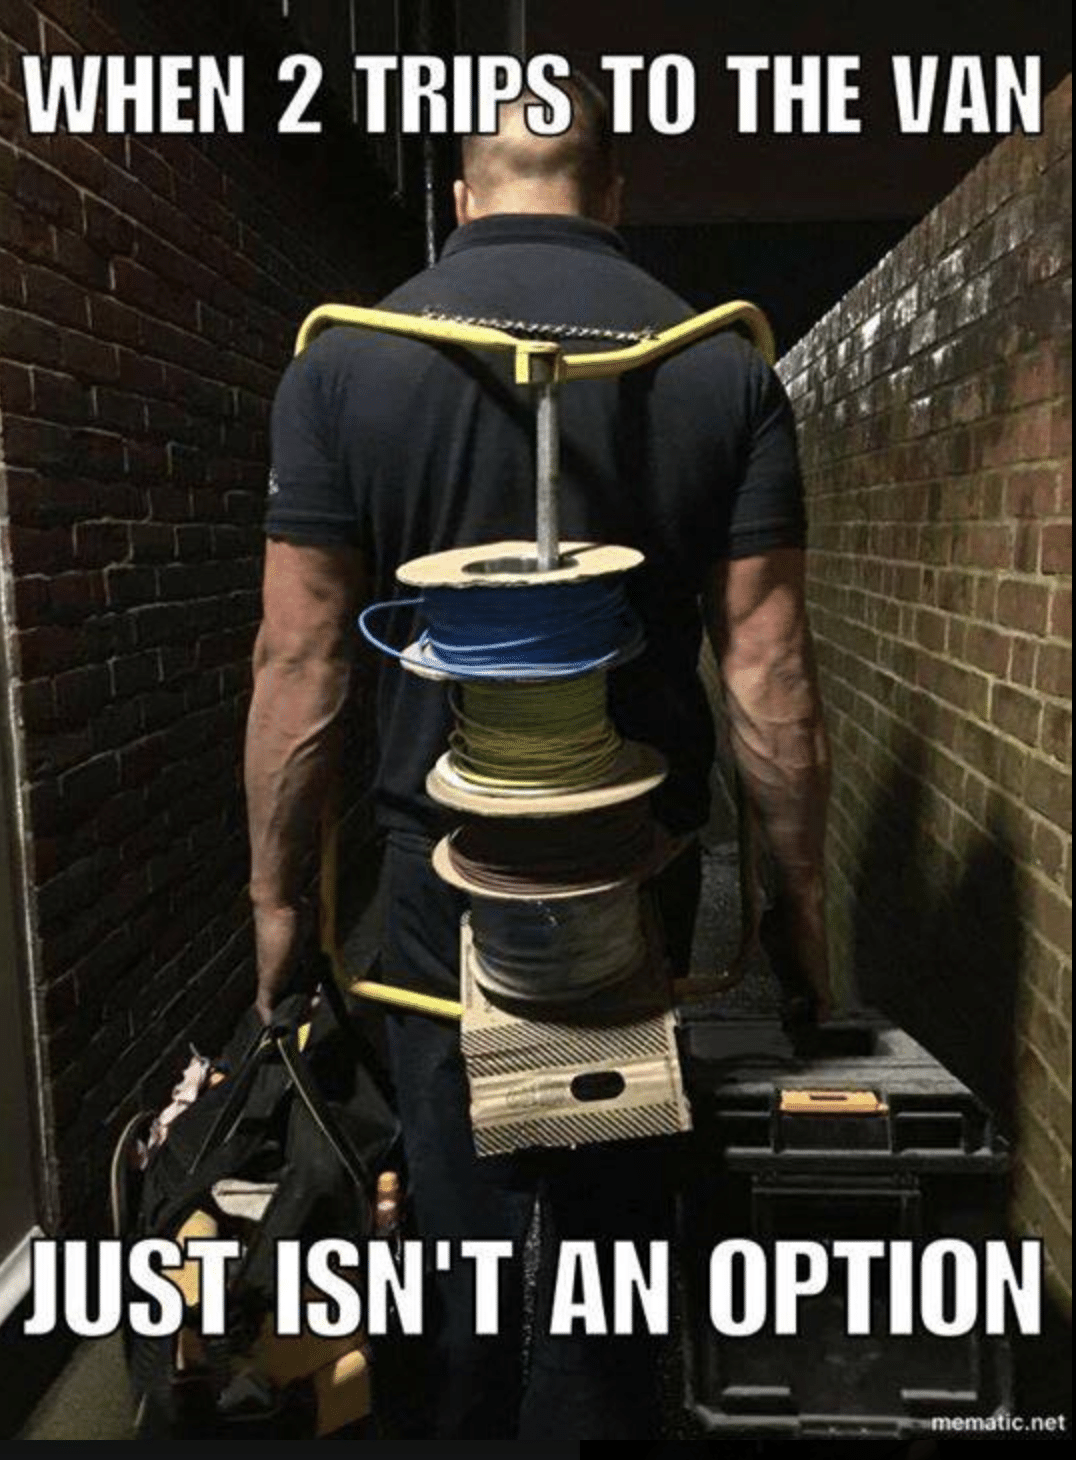 Electrician Meme: When 2 trips to the van just isn't an option